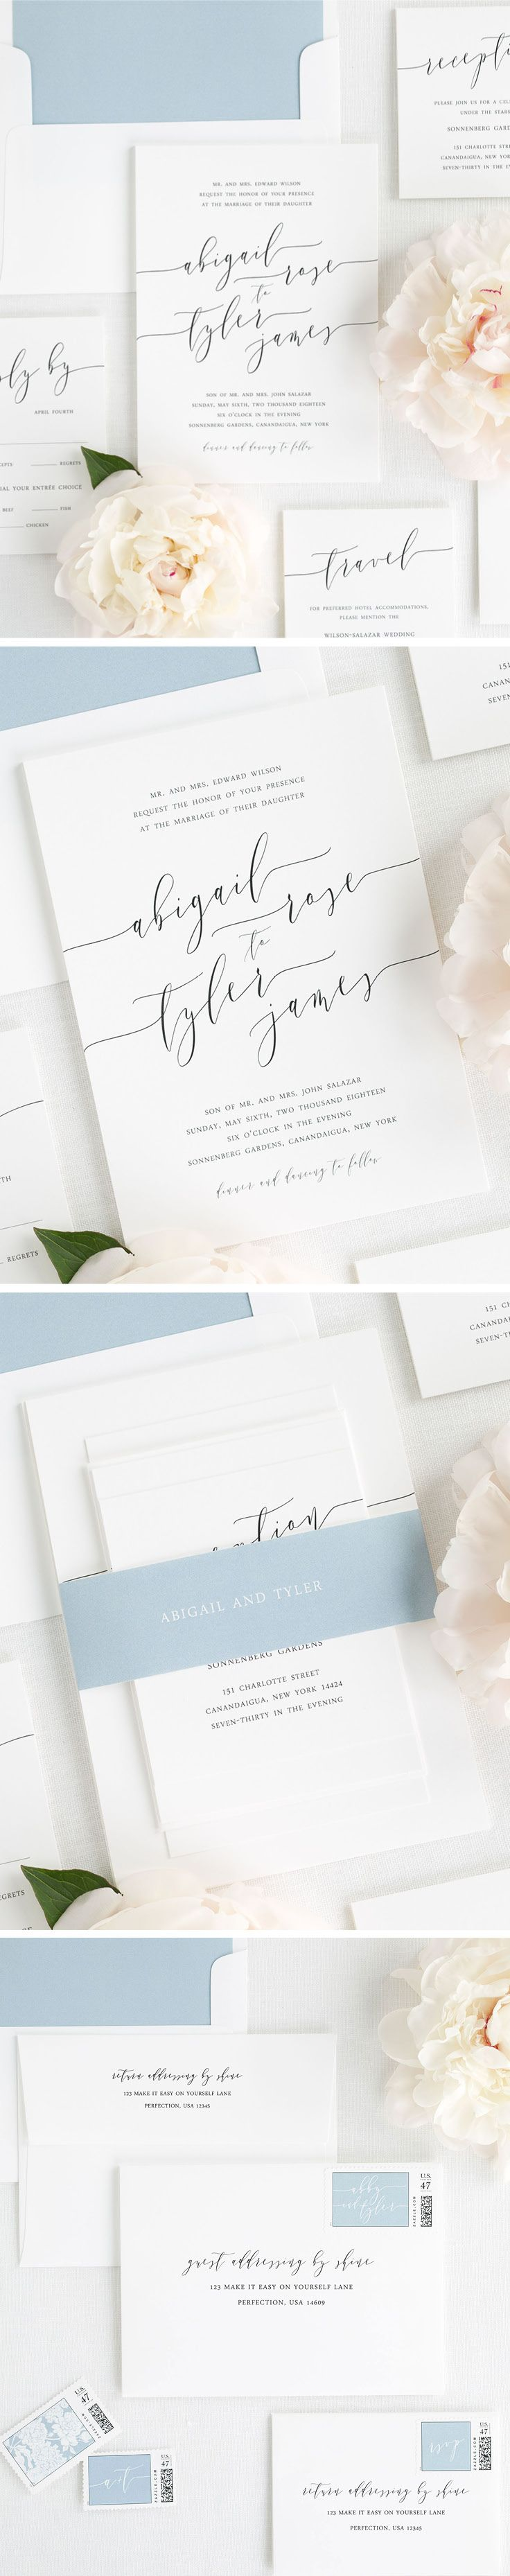 Design your perfect stationery suite from start to finish! Shine Wedding Invitations offers everything you need from save the dates and wedding menu to table numbers and thank you.  cards. White Matte wedding invitations with modern calligraphy make an elegant statement on our Romantic Calligraphy wedding suite. Customize this look with a dusty blue solid envelope liner and a matching belly band. Complete a consistent look with our guest addressing services and custom design stamps.